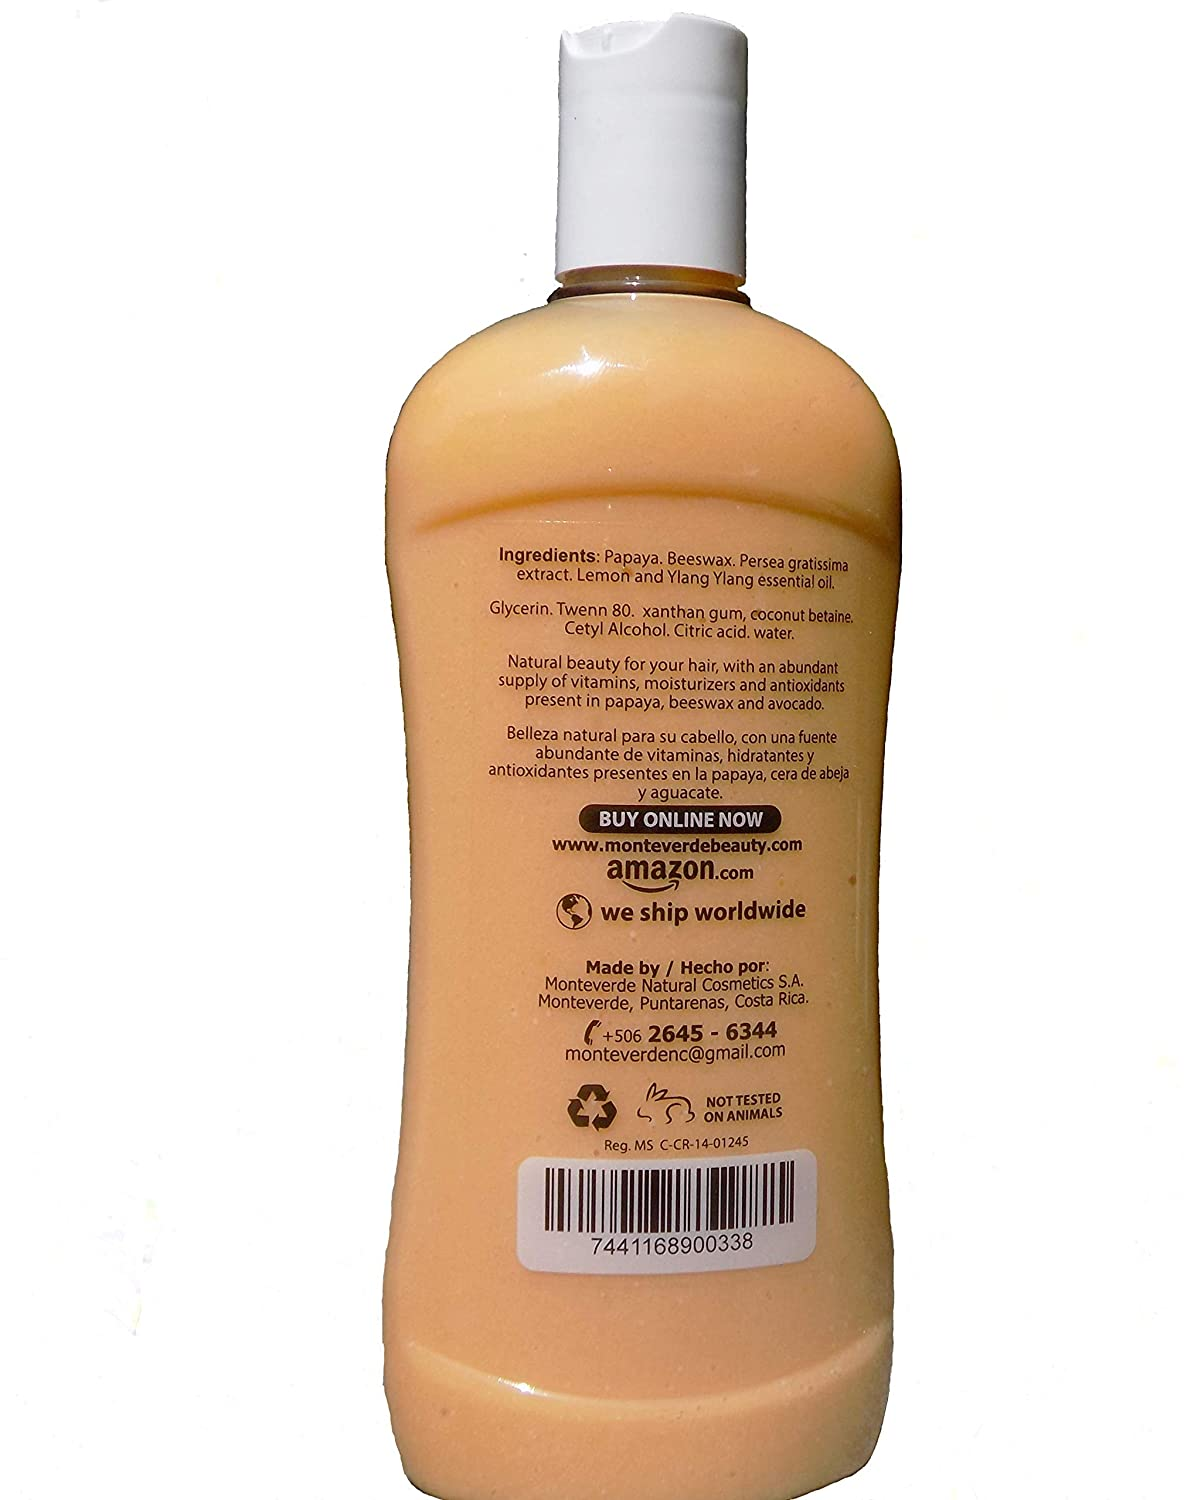 Amazon.com: Papaya & Beeswax Hair conditioner (14 oz)- With Lemon and Ylang Ylang essential oil, Avocado extract- For soft and shine hair - Sulfate, ...